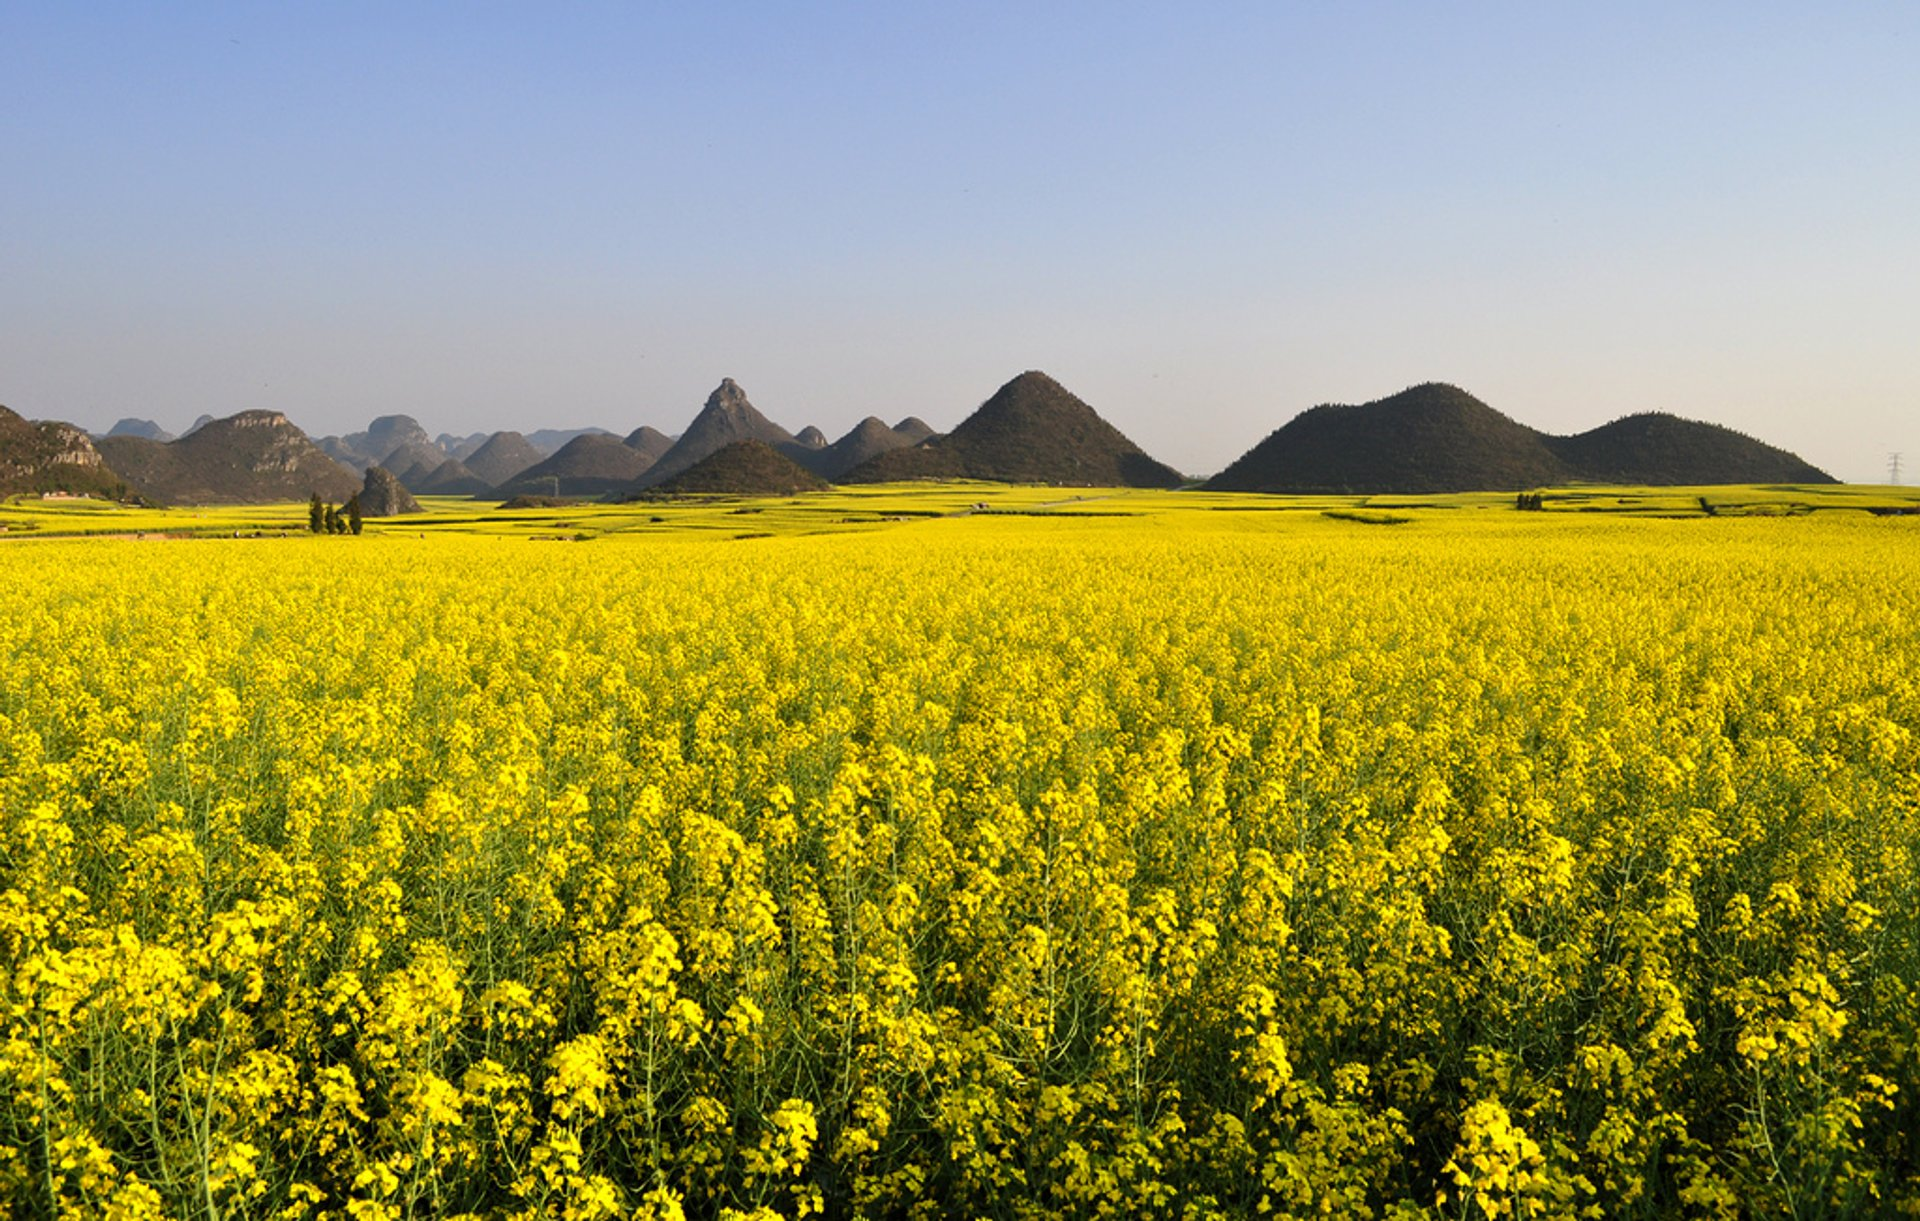 Canola Fields in Luoping in China 2020 - Best Time